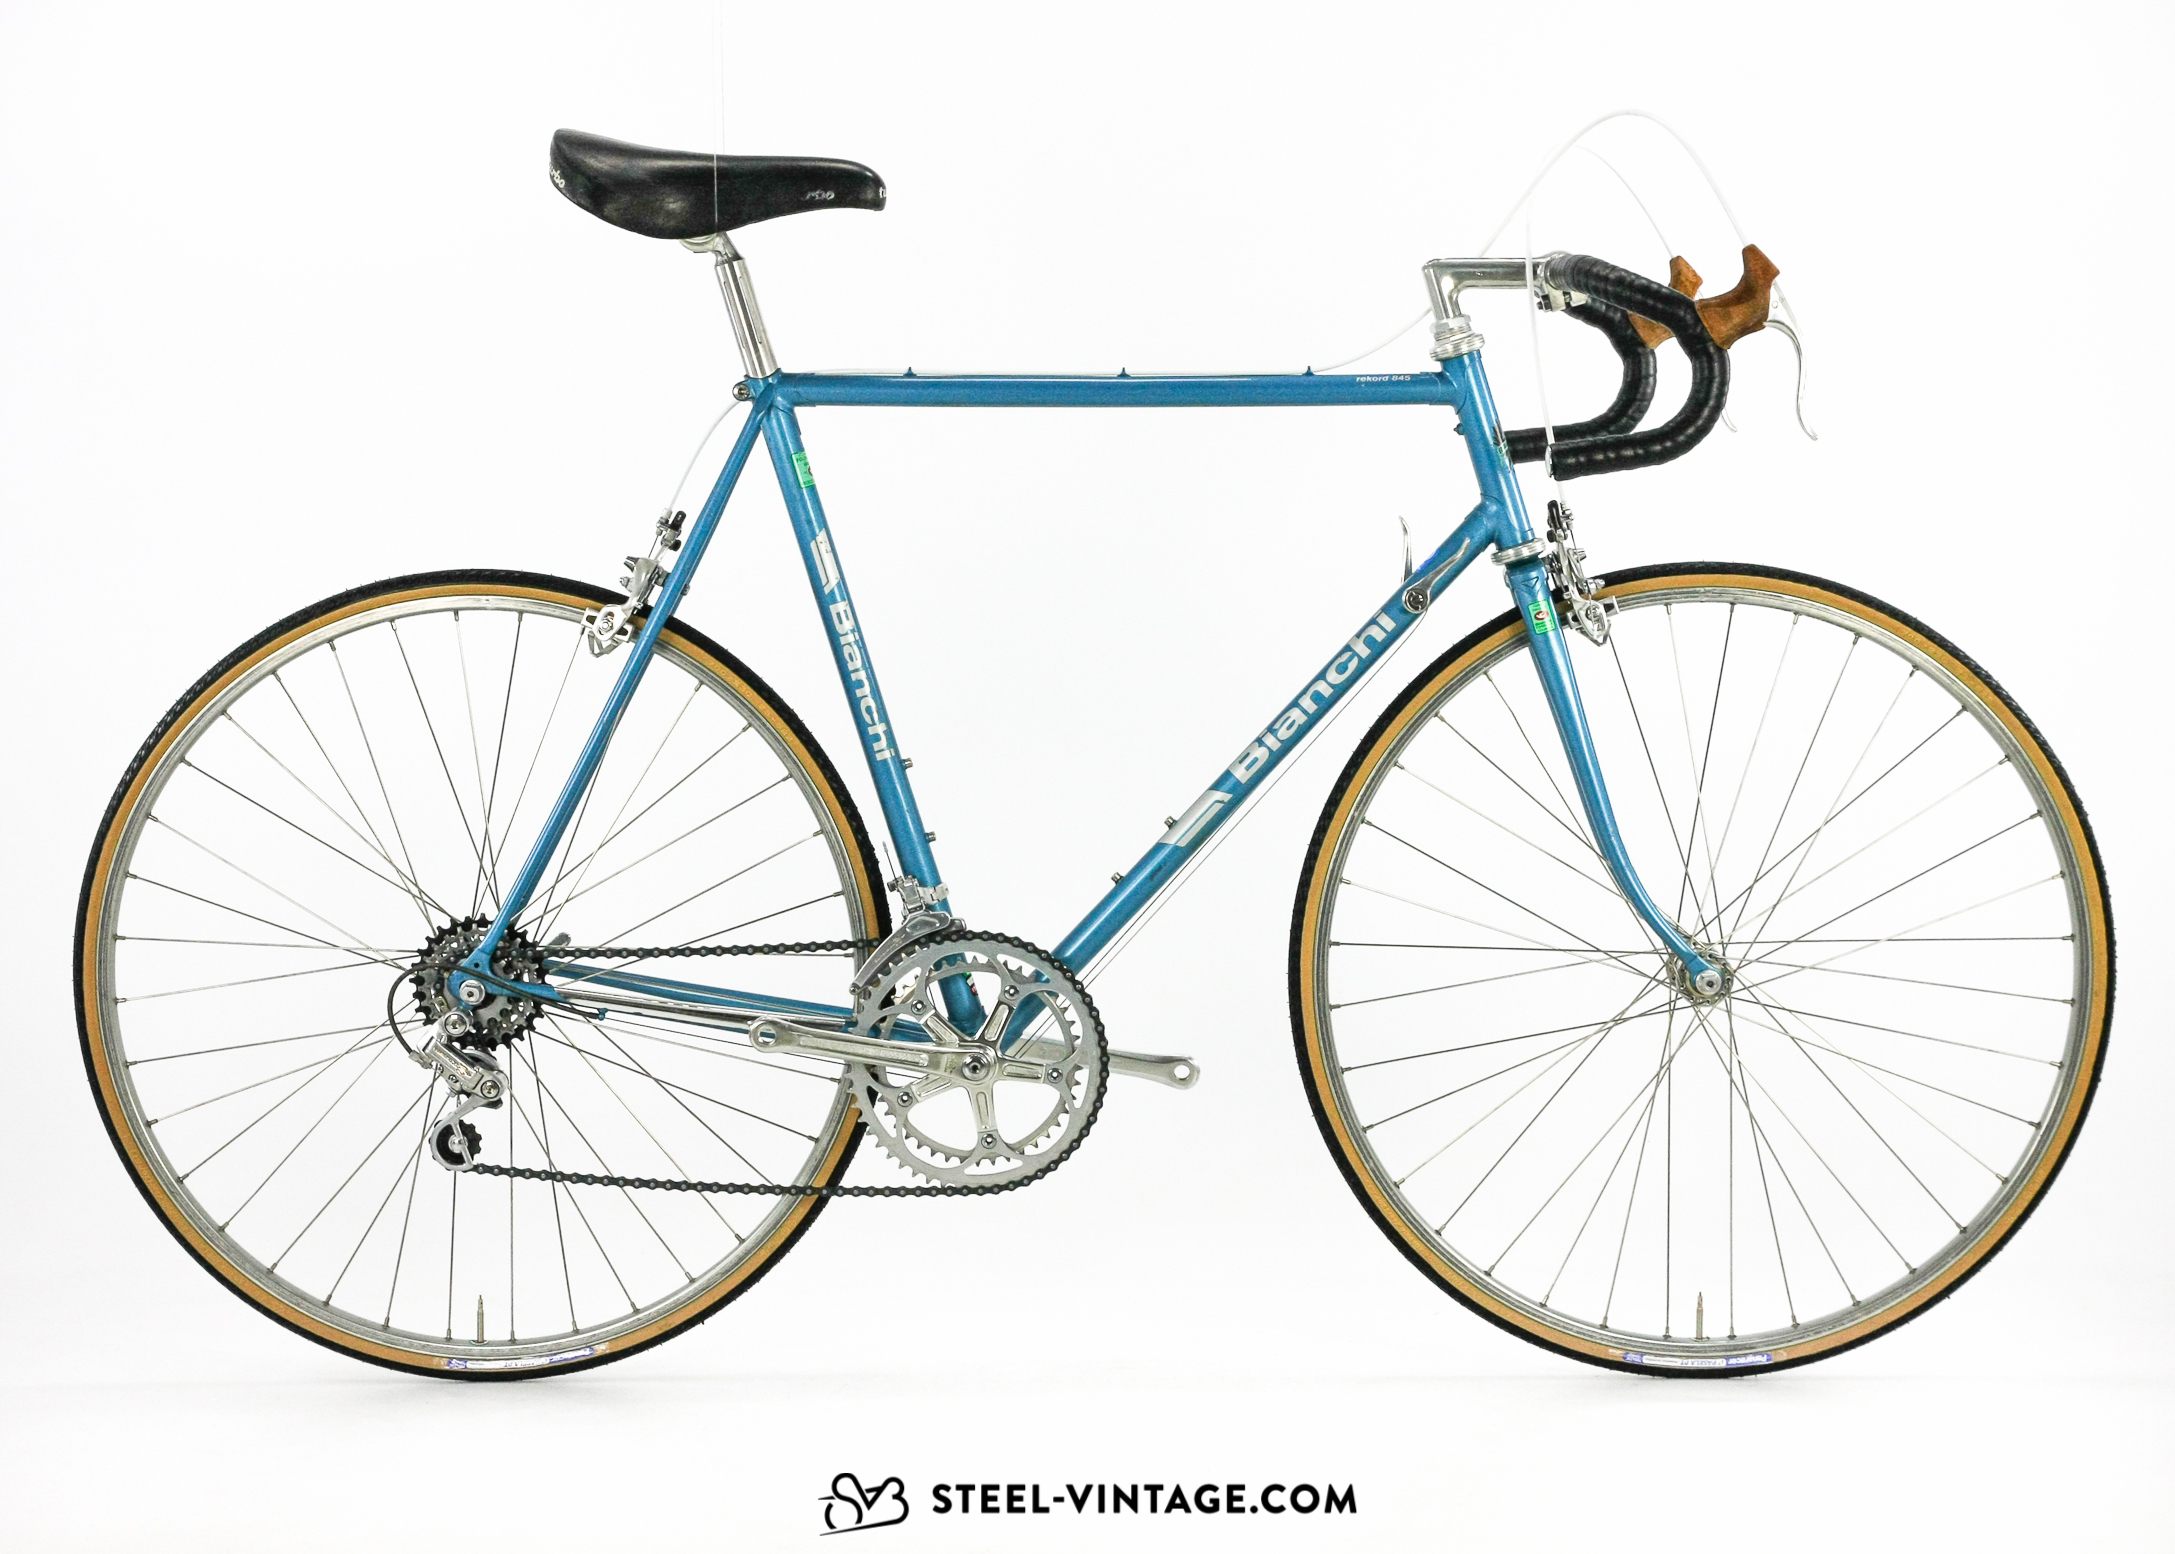 Bianchi Rekord 845 Eroica Vintage Bicycle from 1983